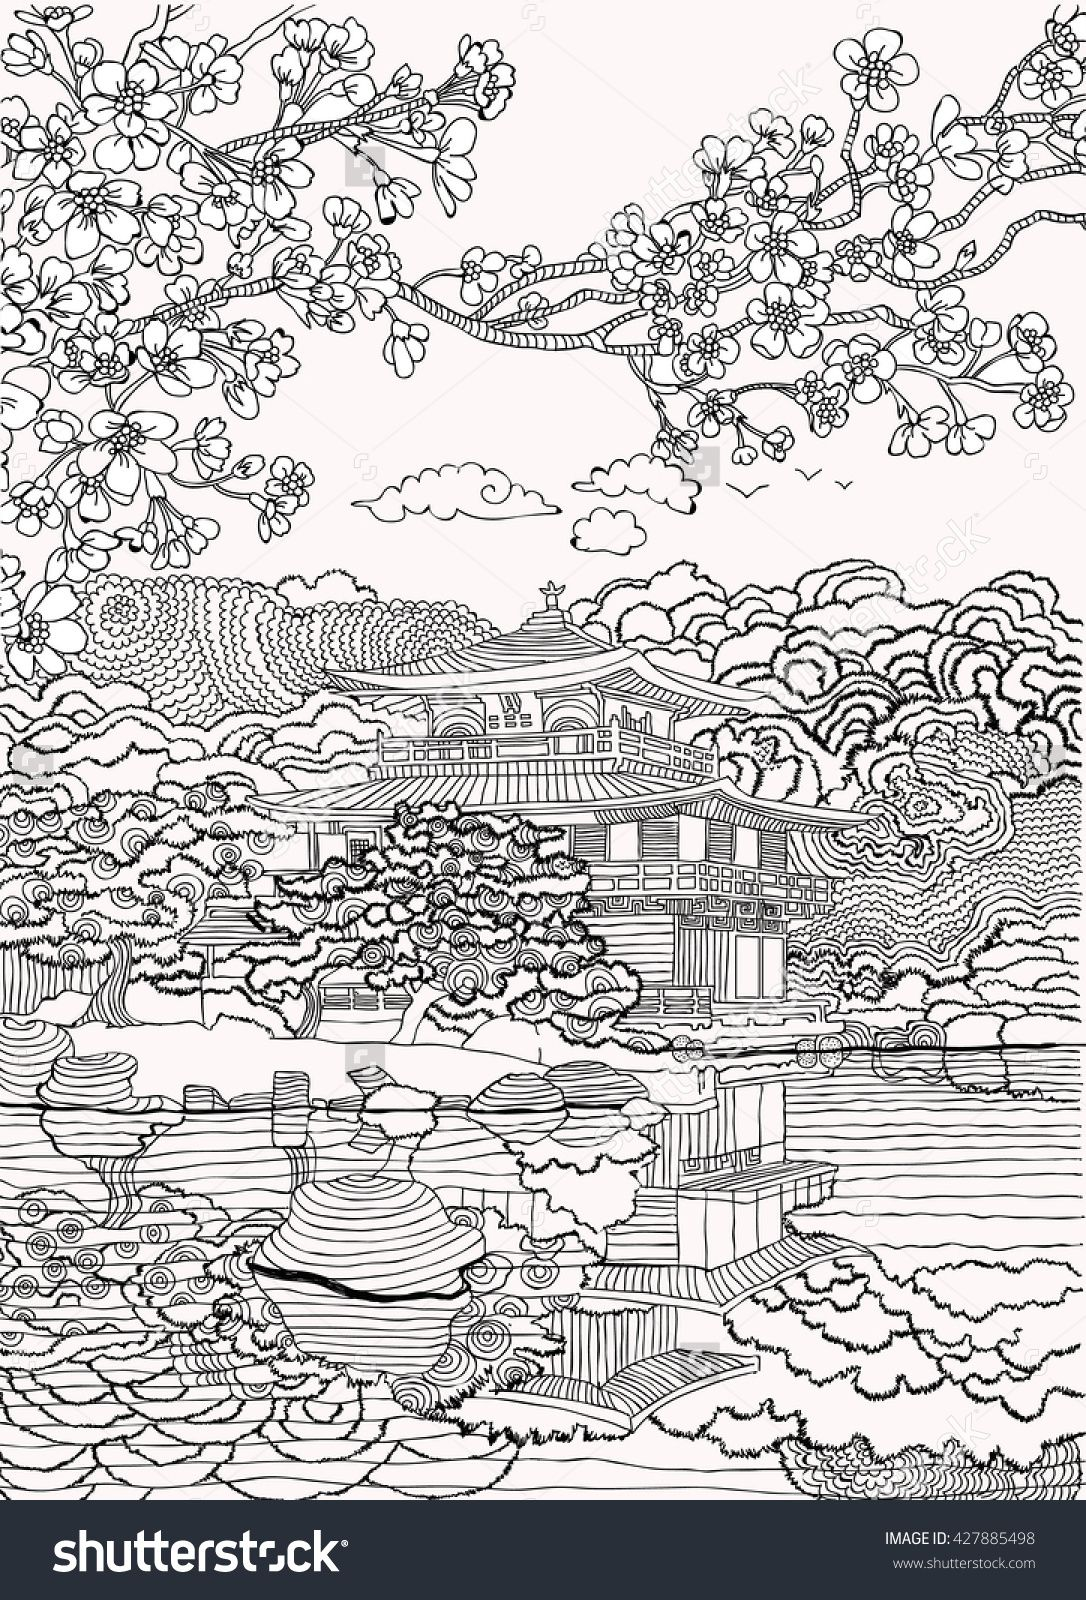 Japan coloring pages Shutterstock : 427885498 | Adult Coloring Pages ...